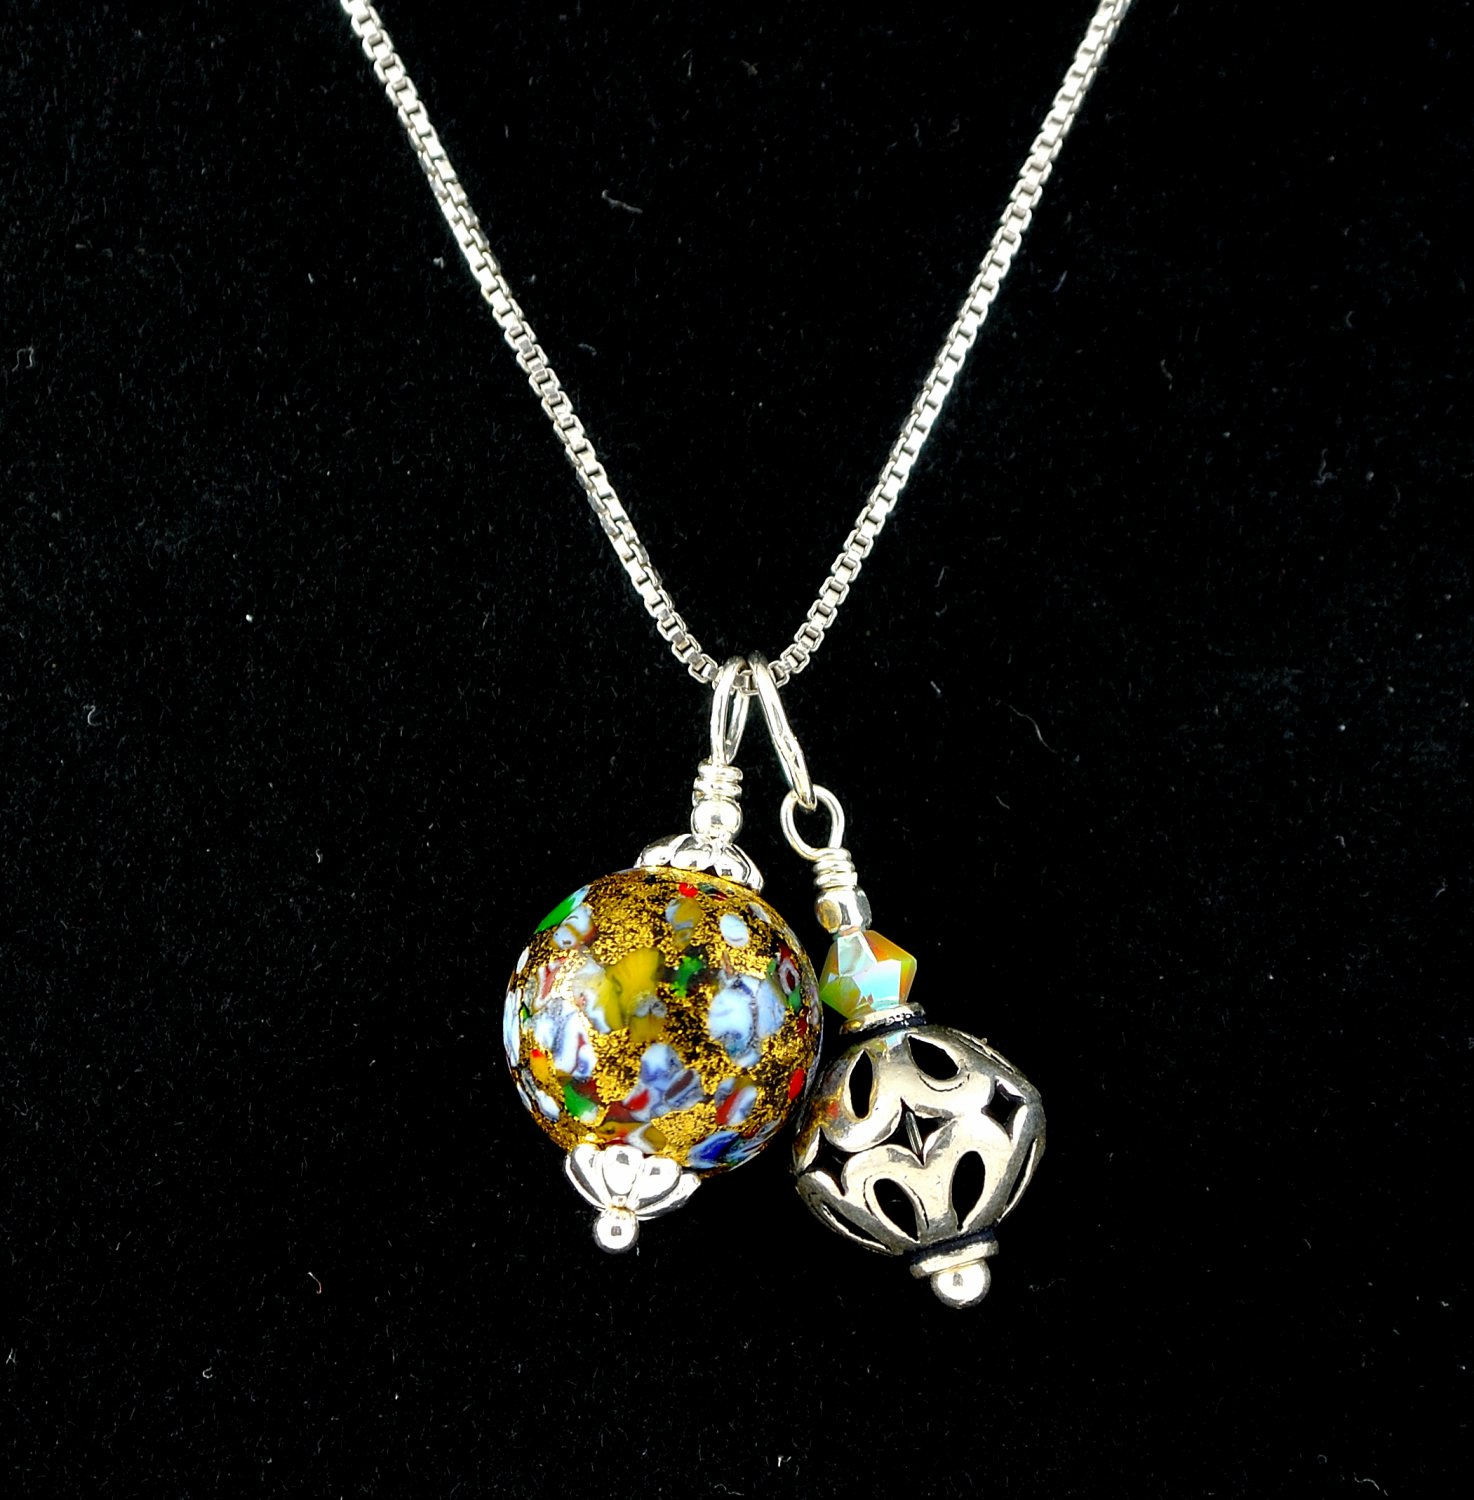 Sterling Silver Murano Glass and Swarovski Crystal Double Pendant with Chain